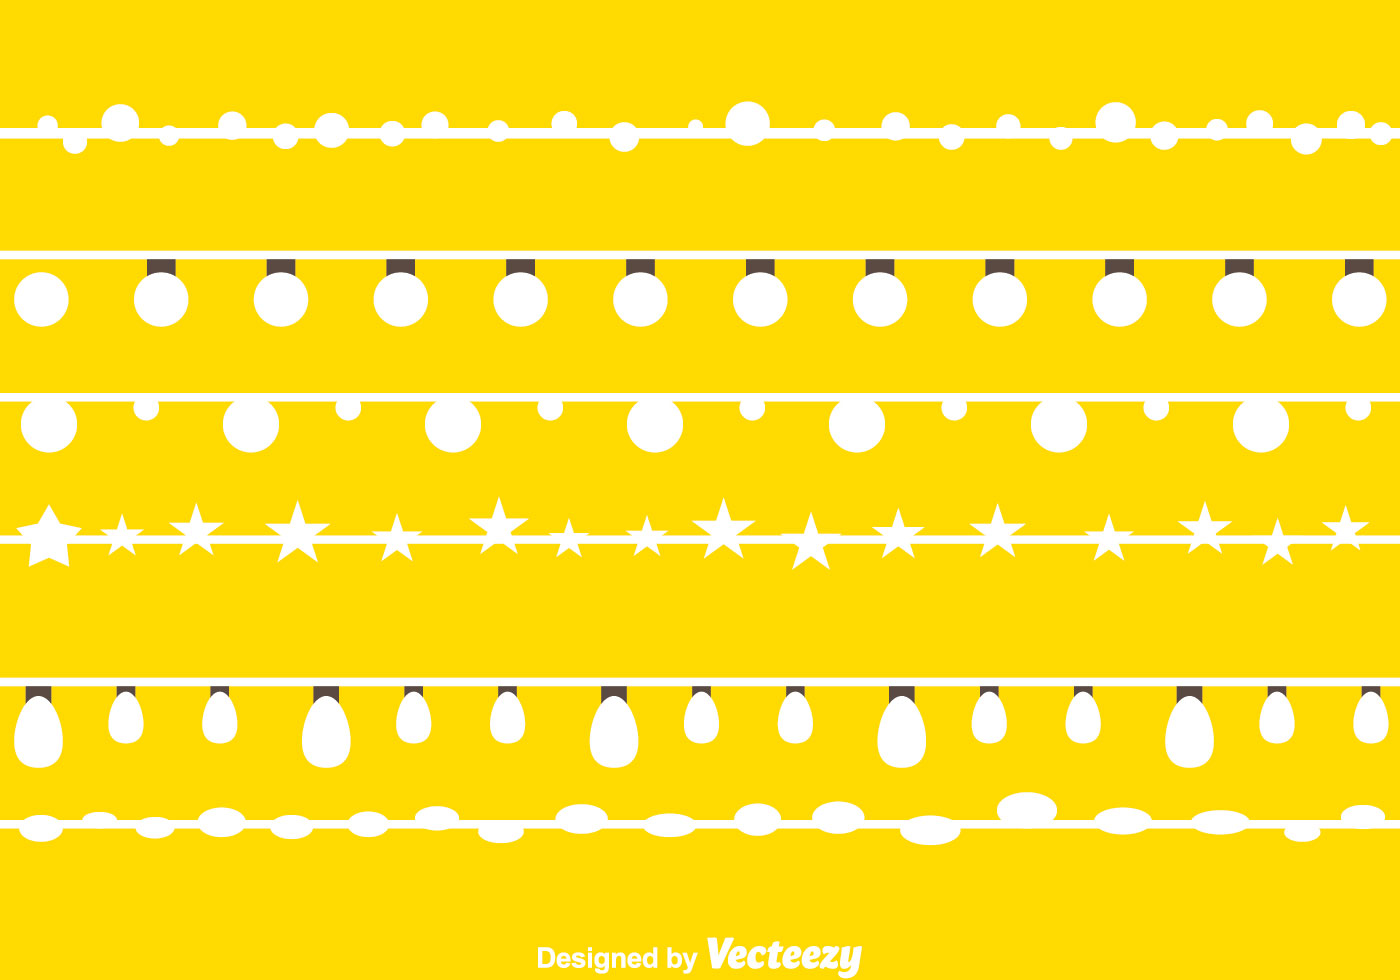 White String Lights - Download Free Vector Art, Stock Graphics & Images